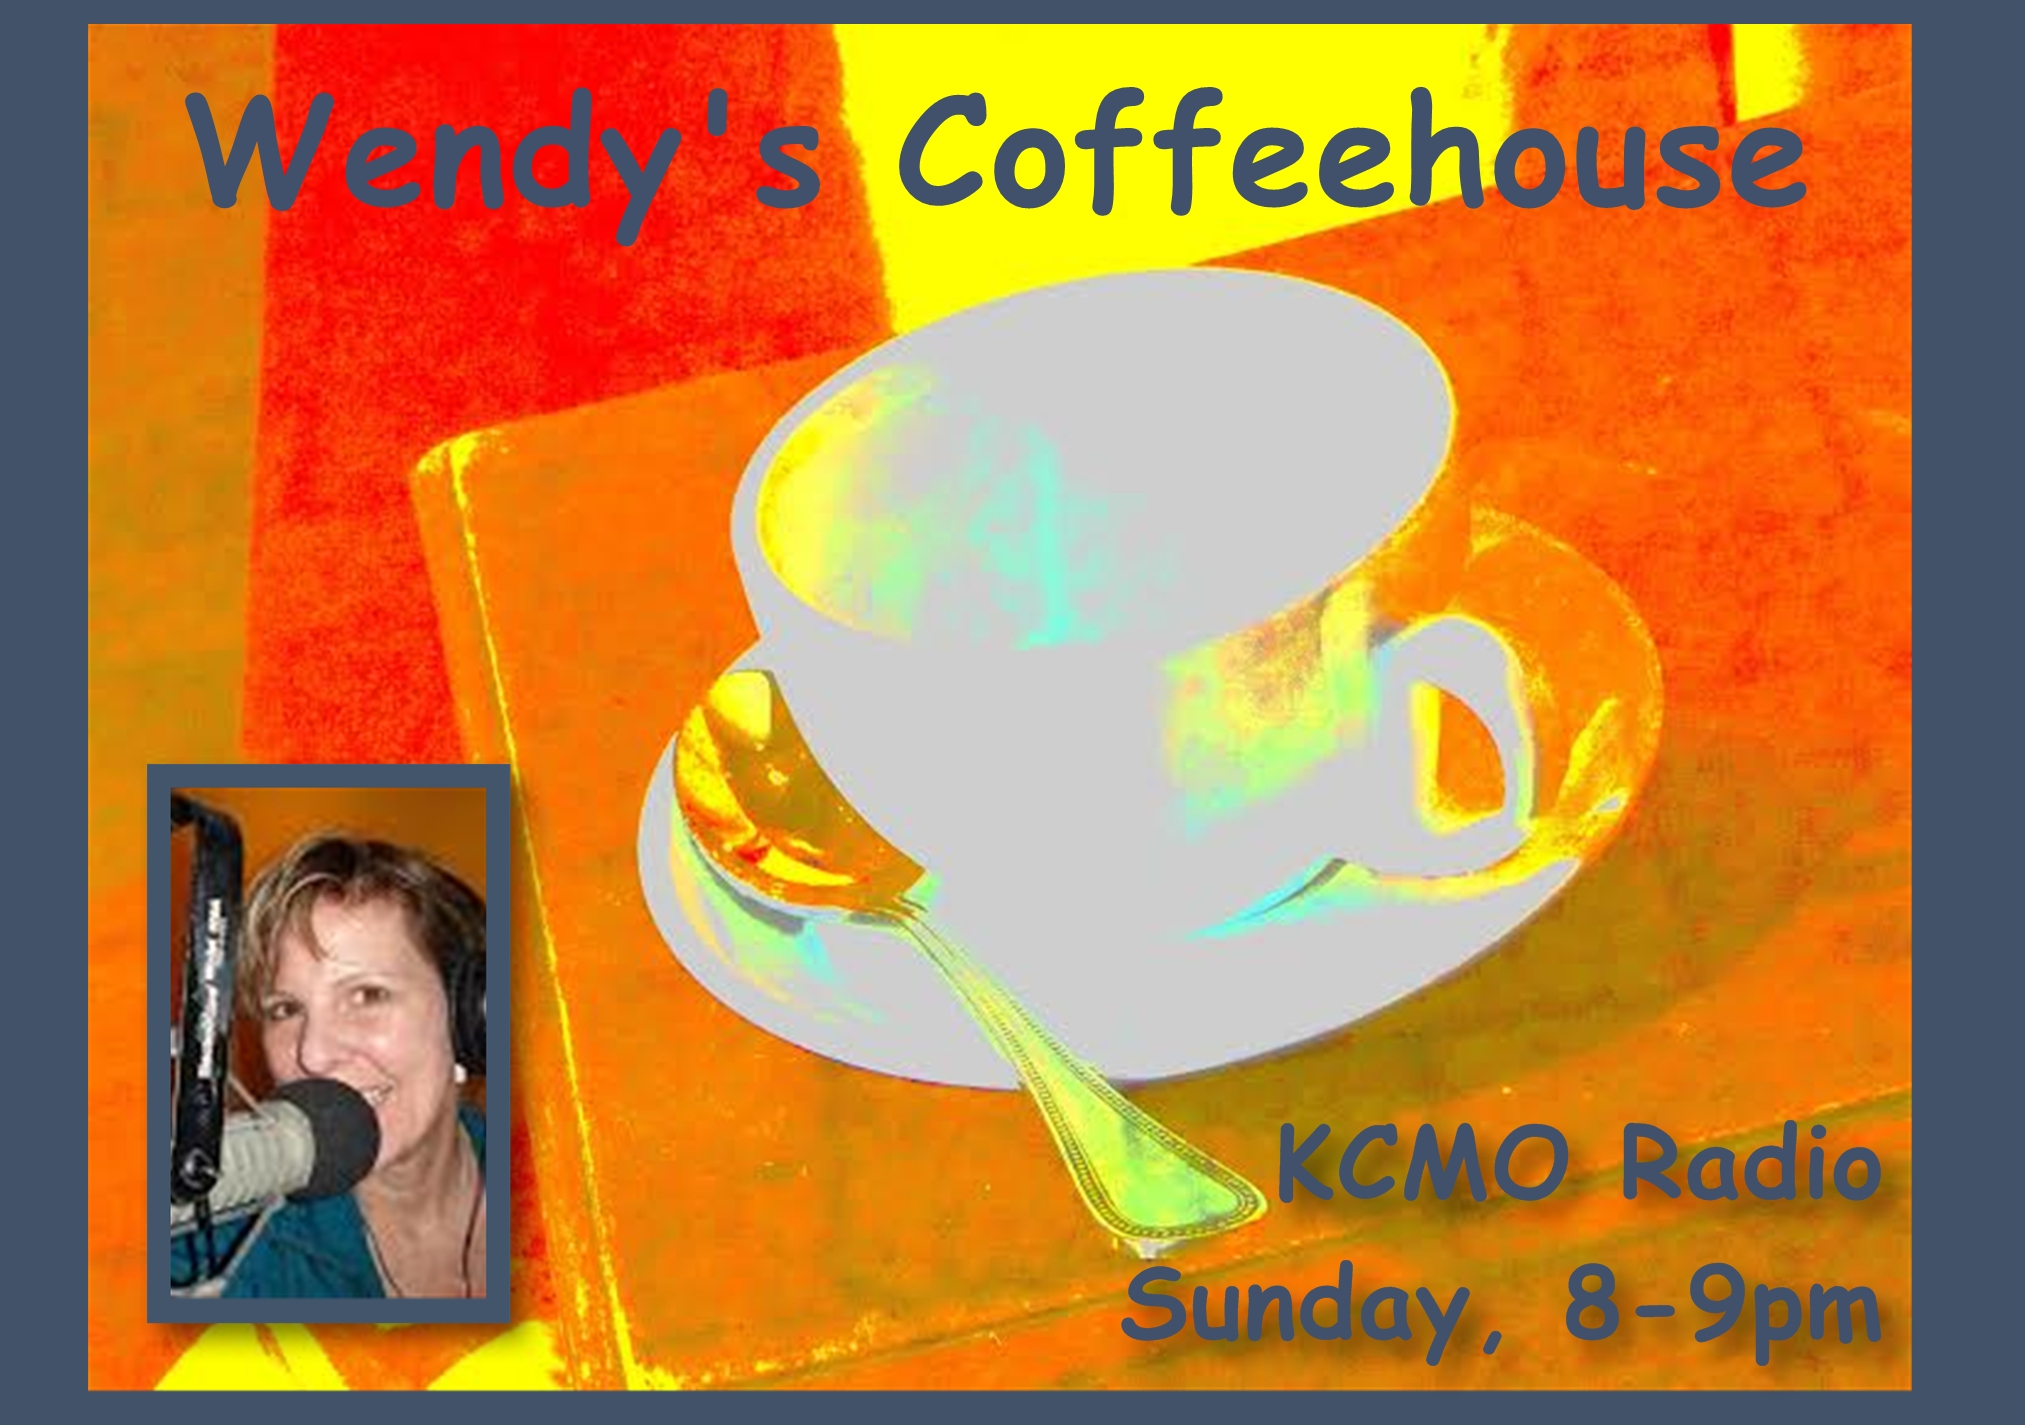 Wendy's Coffeehouse